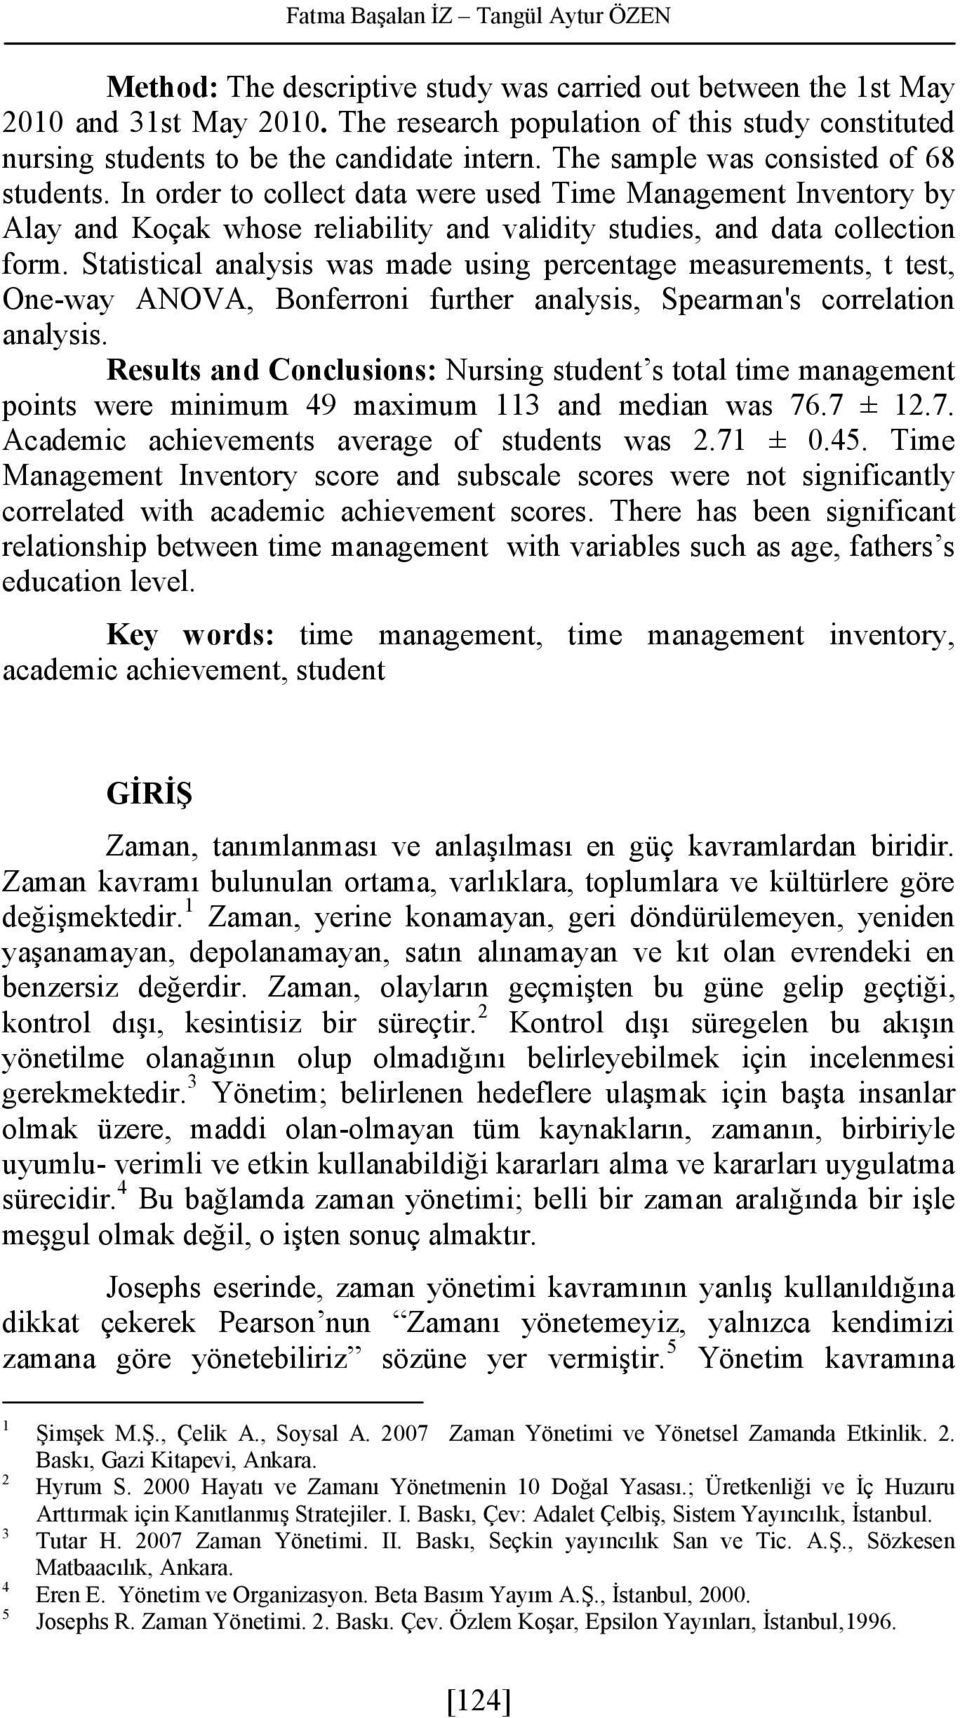 In order to collect data were used Time Management Inventory by Alay and Koçak whose reliability and validity studies, and data collection form.